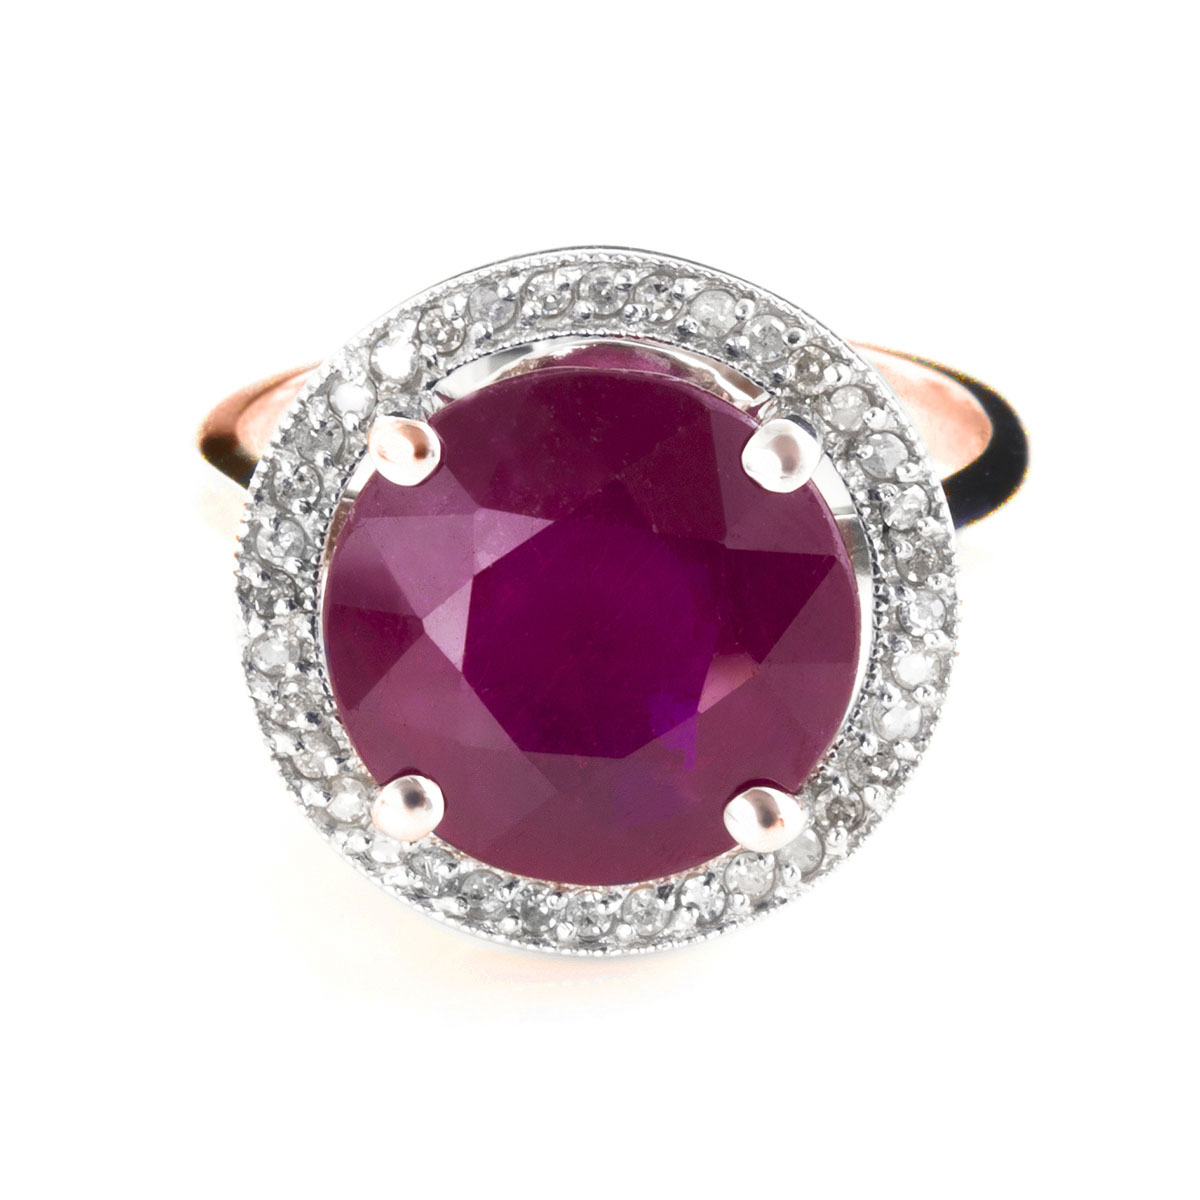 Ruby & Diamond Halo Ring in 9ct Rose Gold